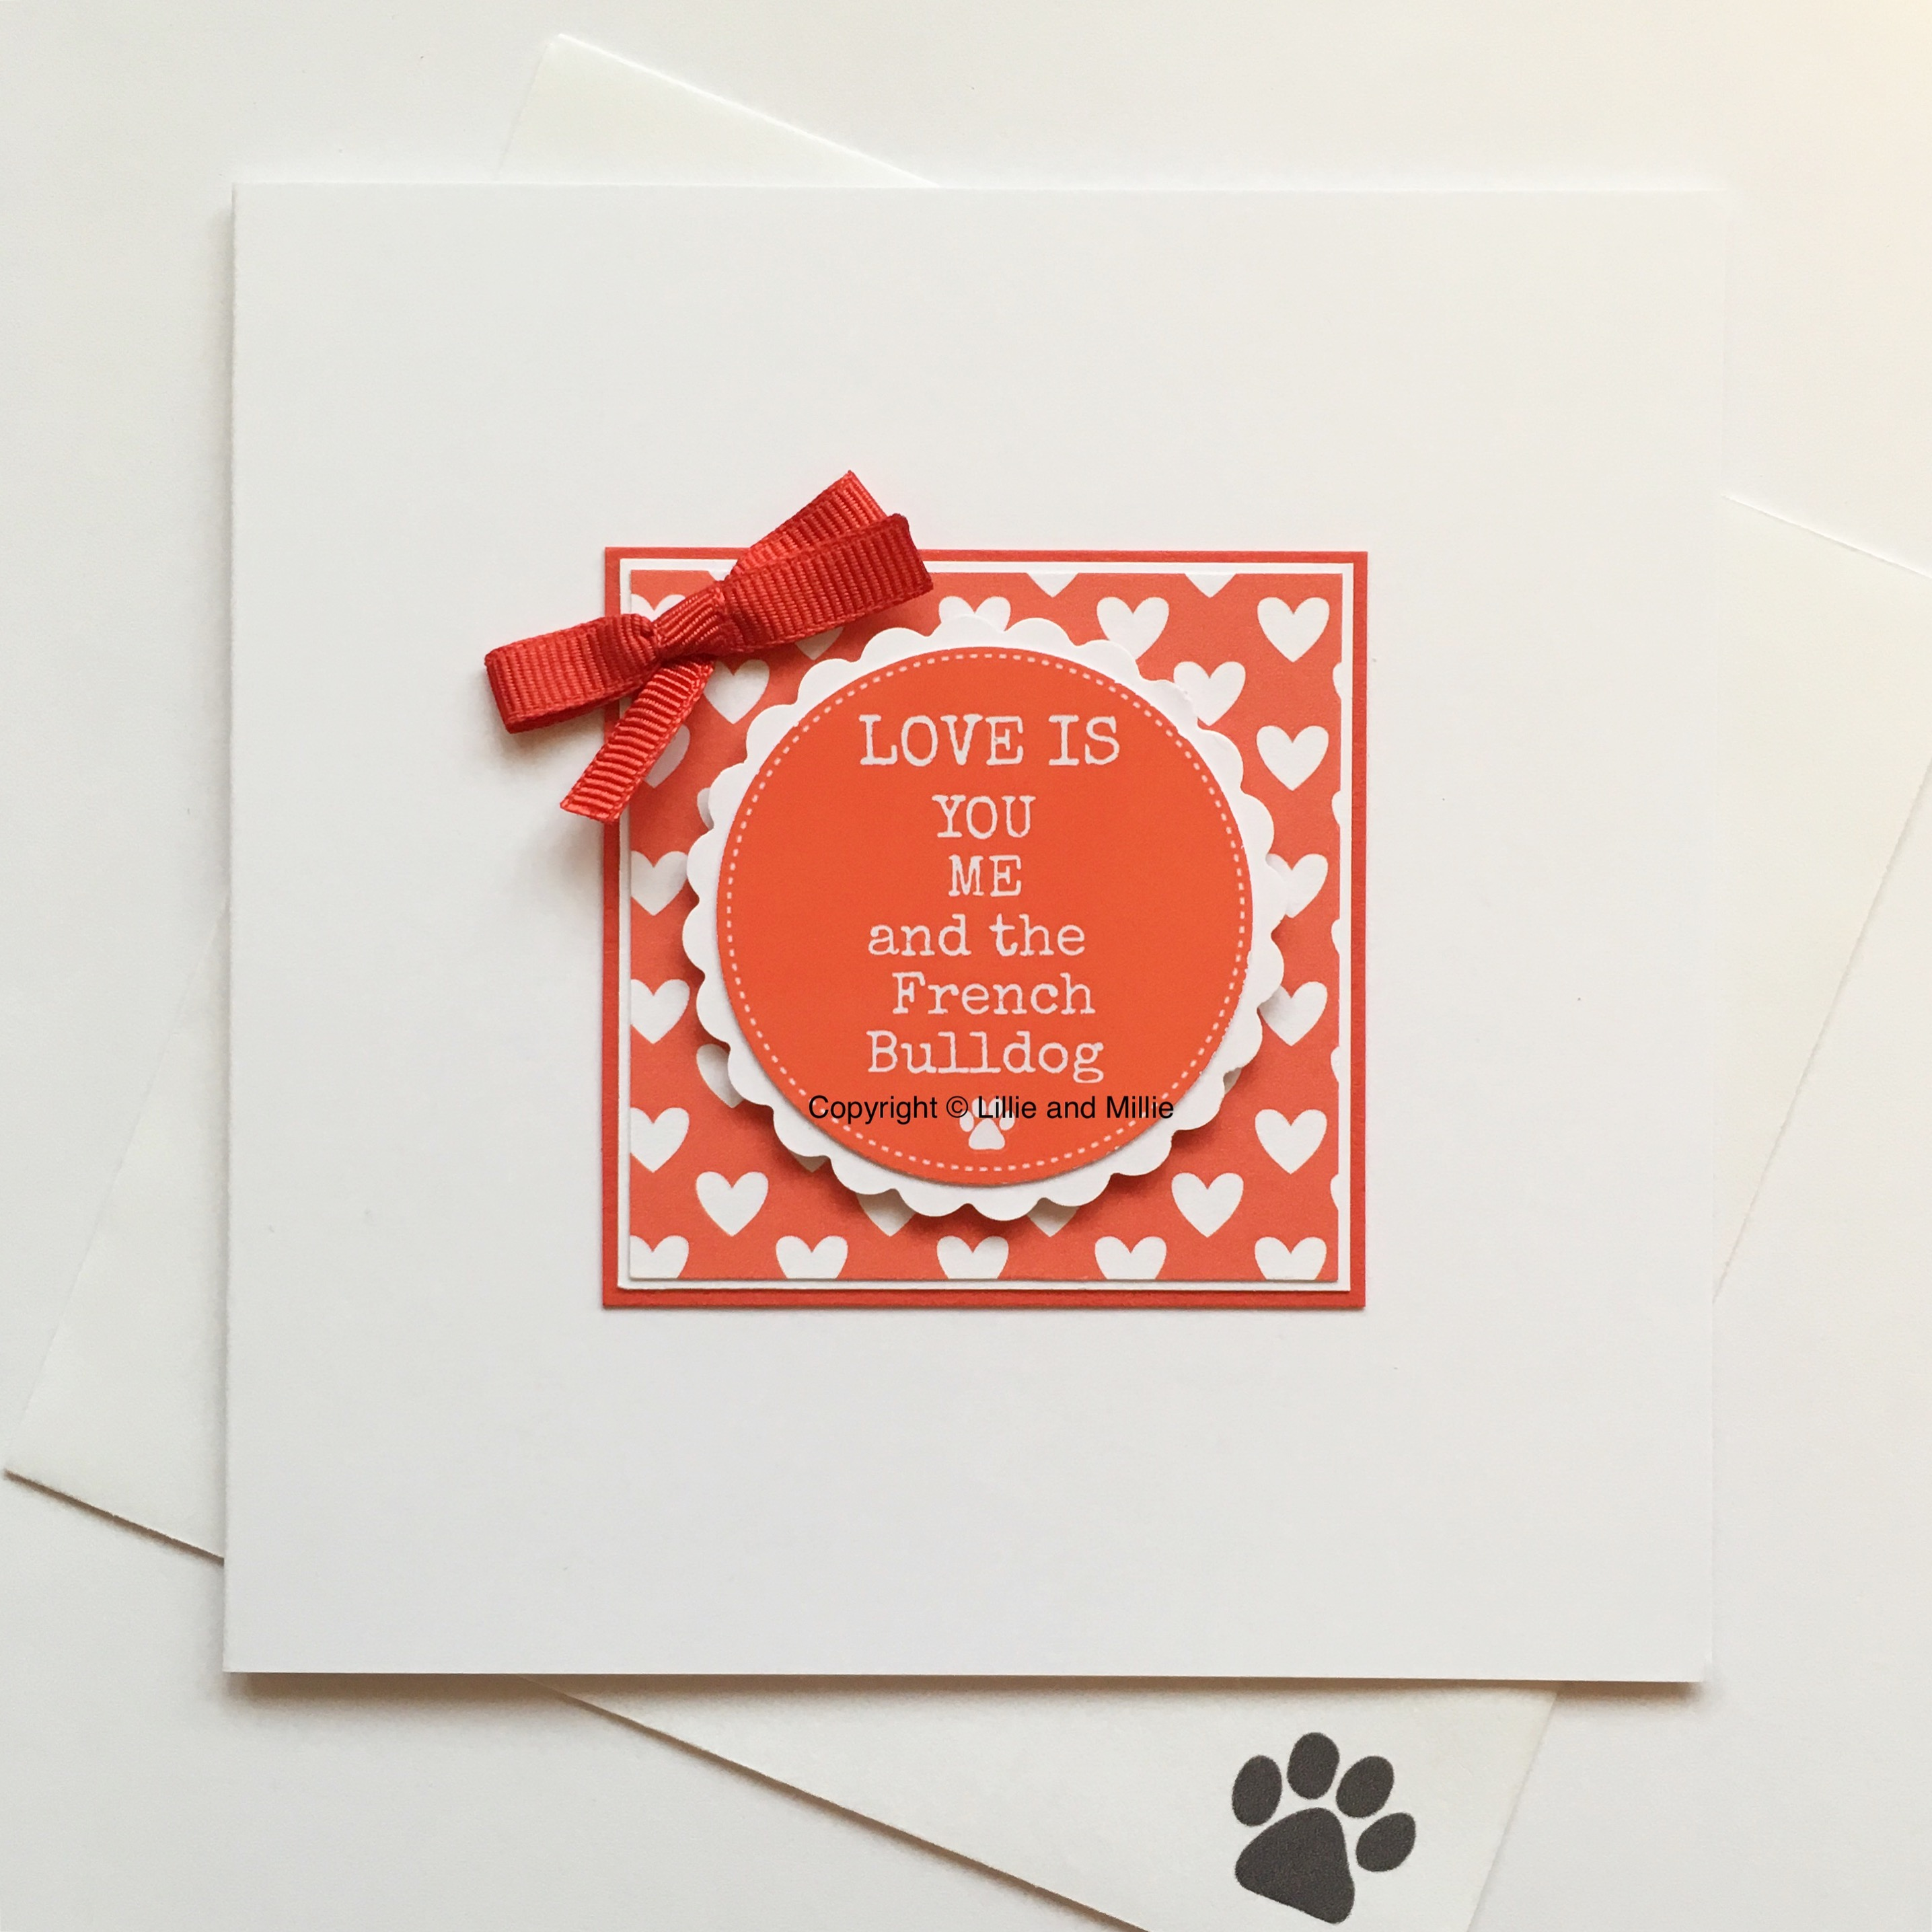 Love is You Me and the French Bulldog Red Card